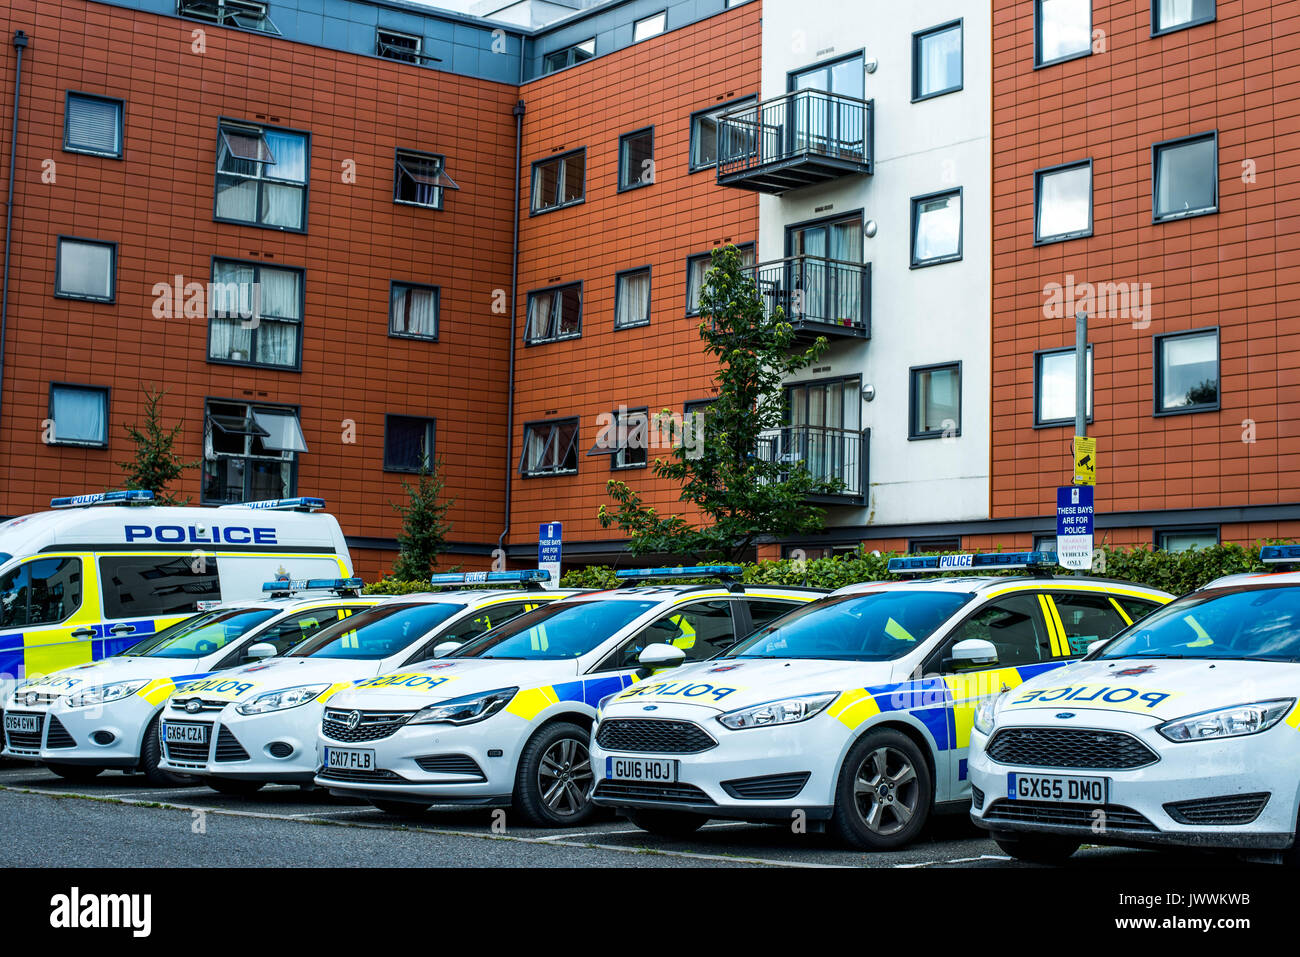 Patrol Cars Stock Photos & Patrol Cars Stock Images - Alamy